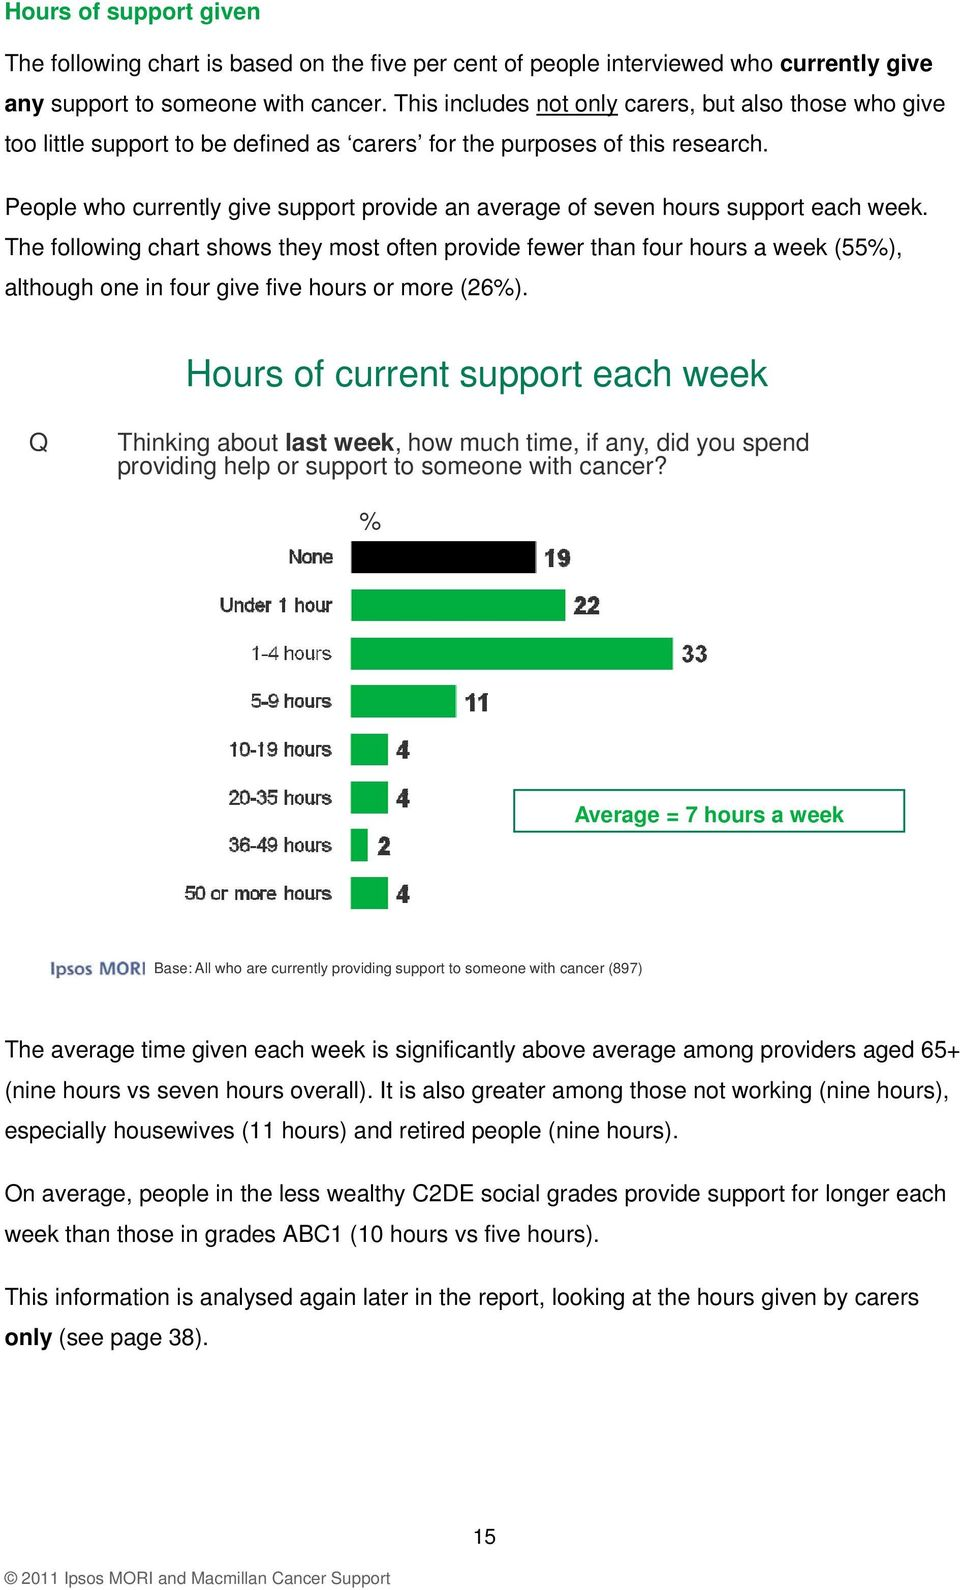 People who currently give support provide an average of seven hours support each week.